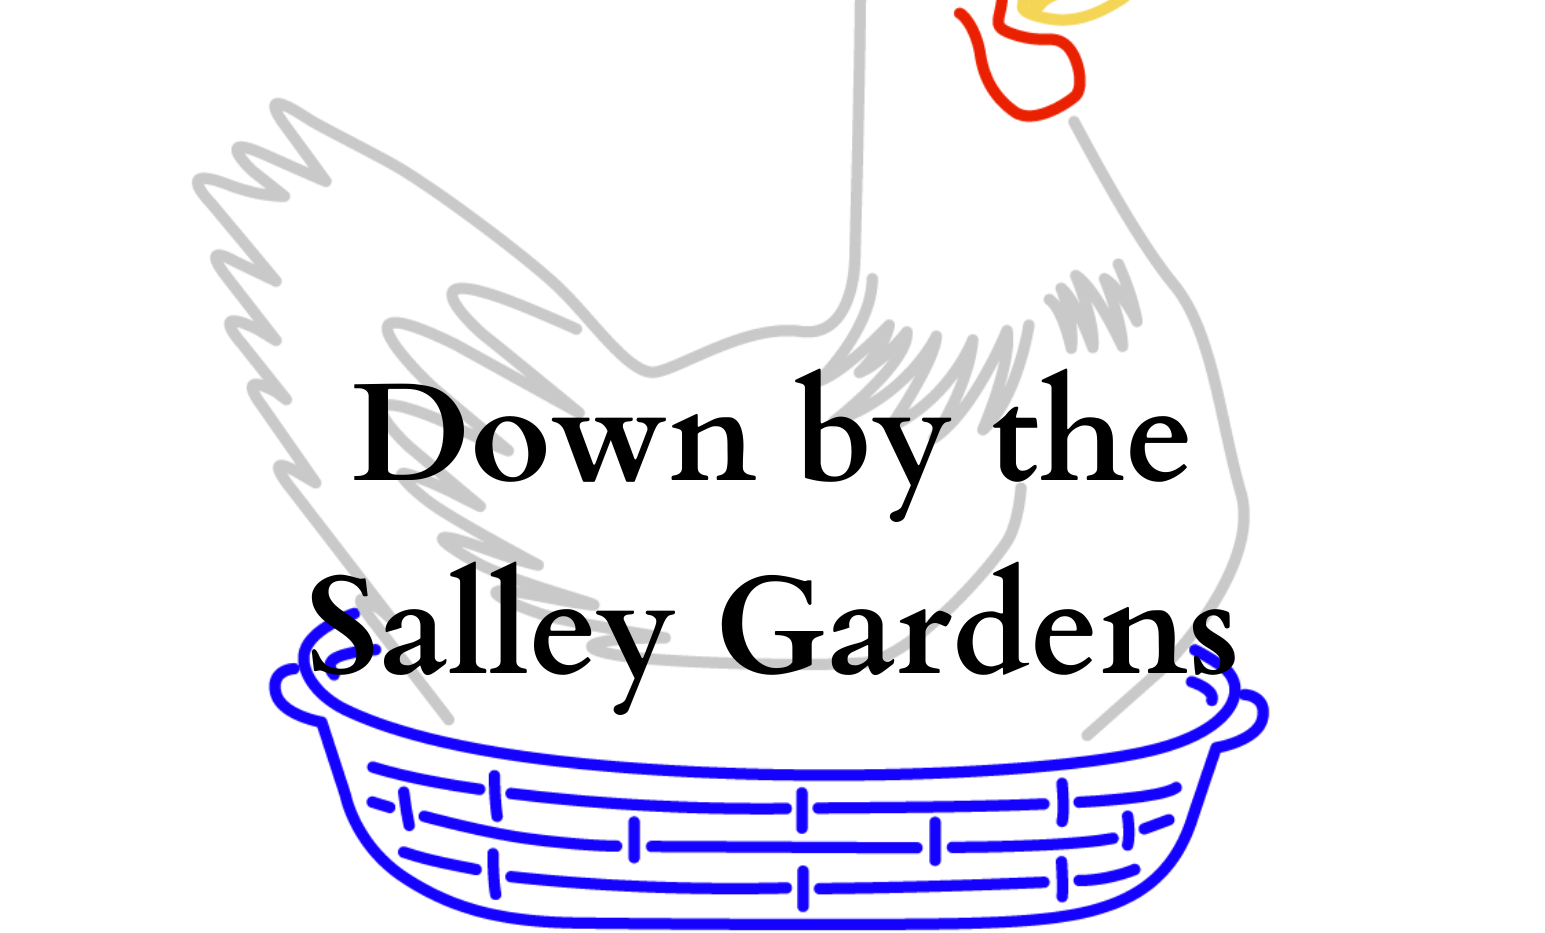 Down by the Salley Gardens cover.png